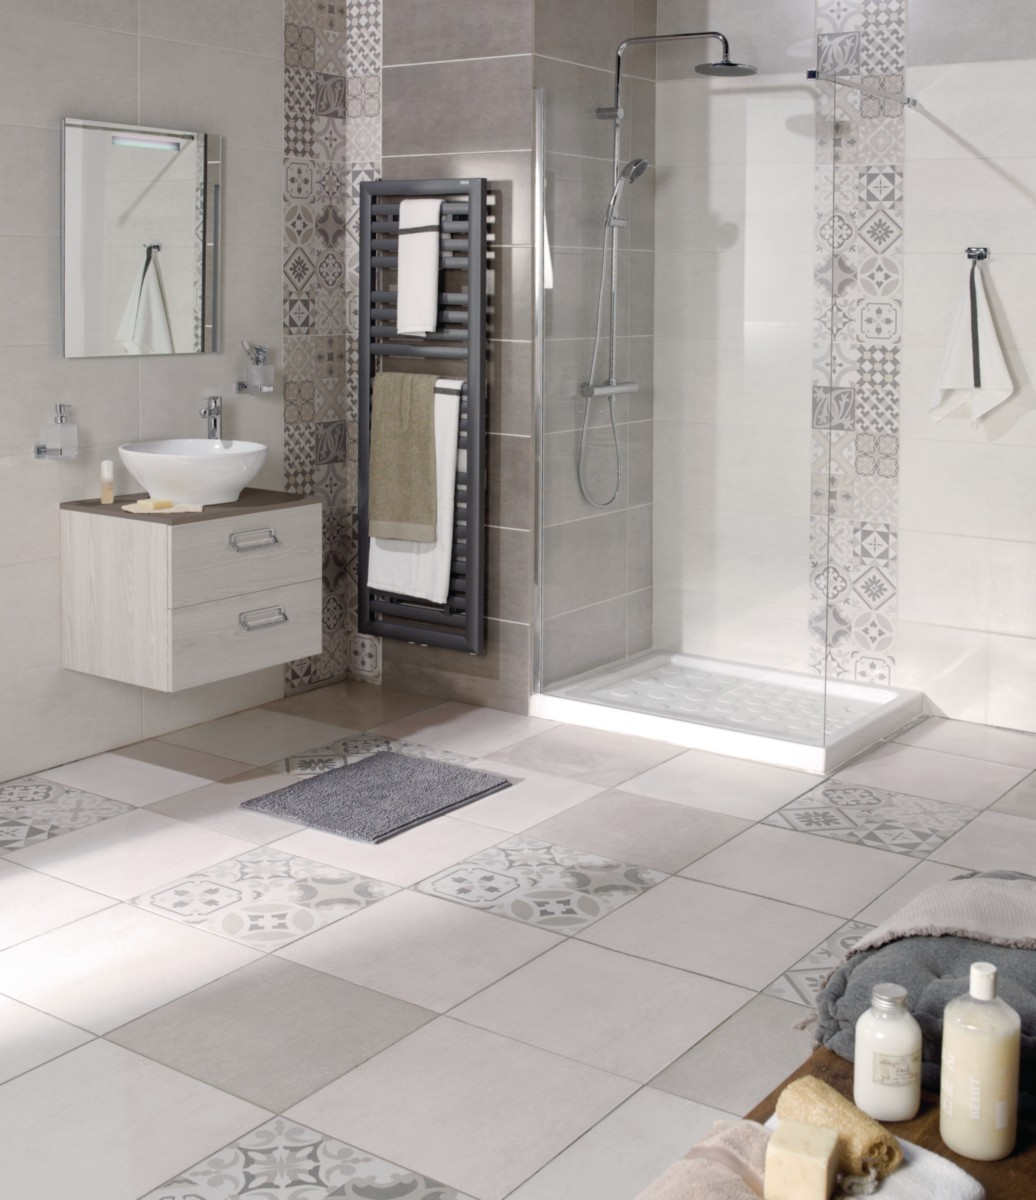 Carrelage sol salle de bain point p id e for Carrelage sol salle de bain